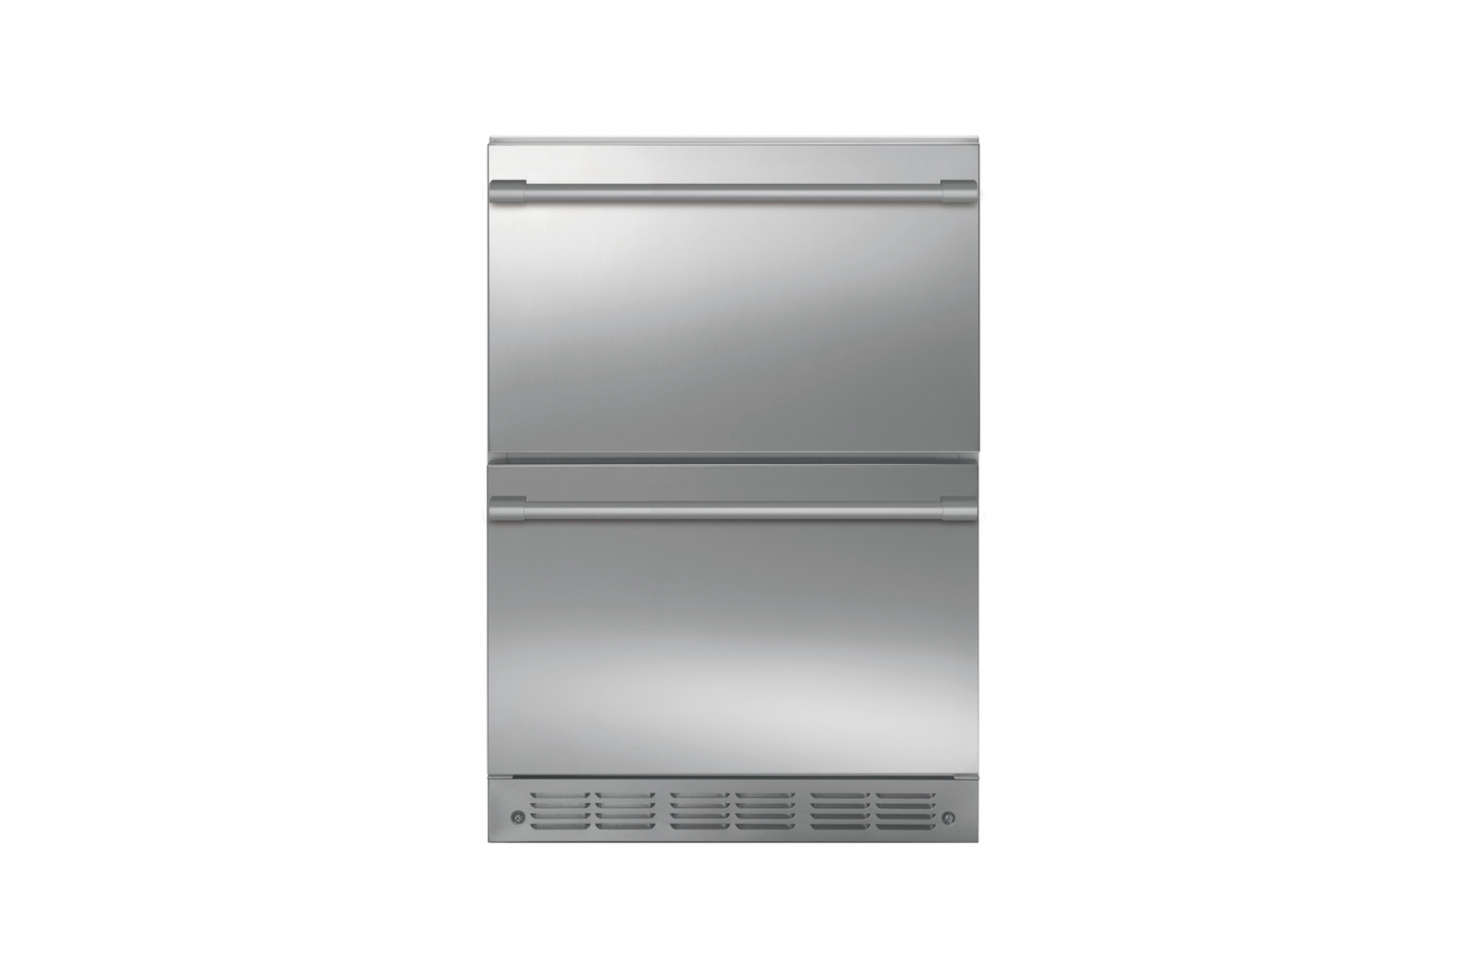 The Monogram 34 Inch Built-In Double Drawer Refrigerator (ZIDS0NSS) is $